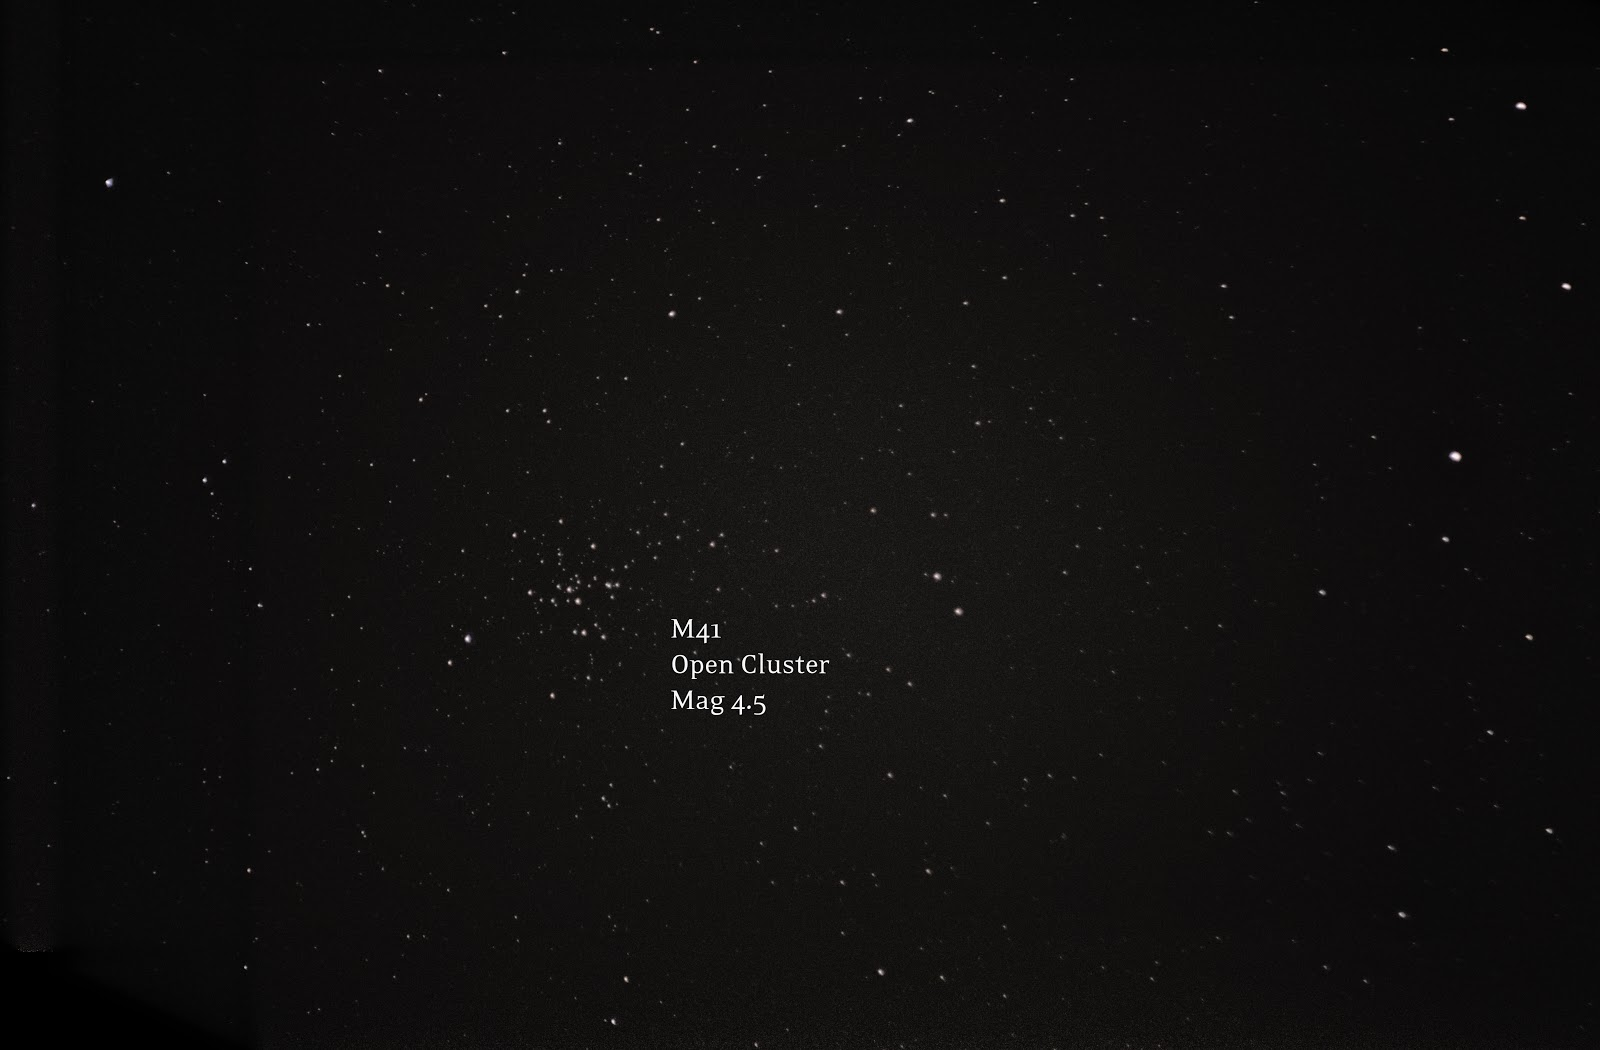 open cluster M41 with T5i